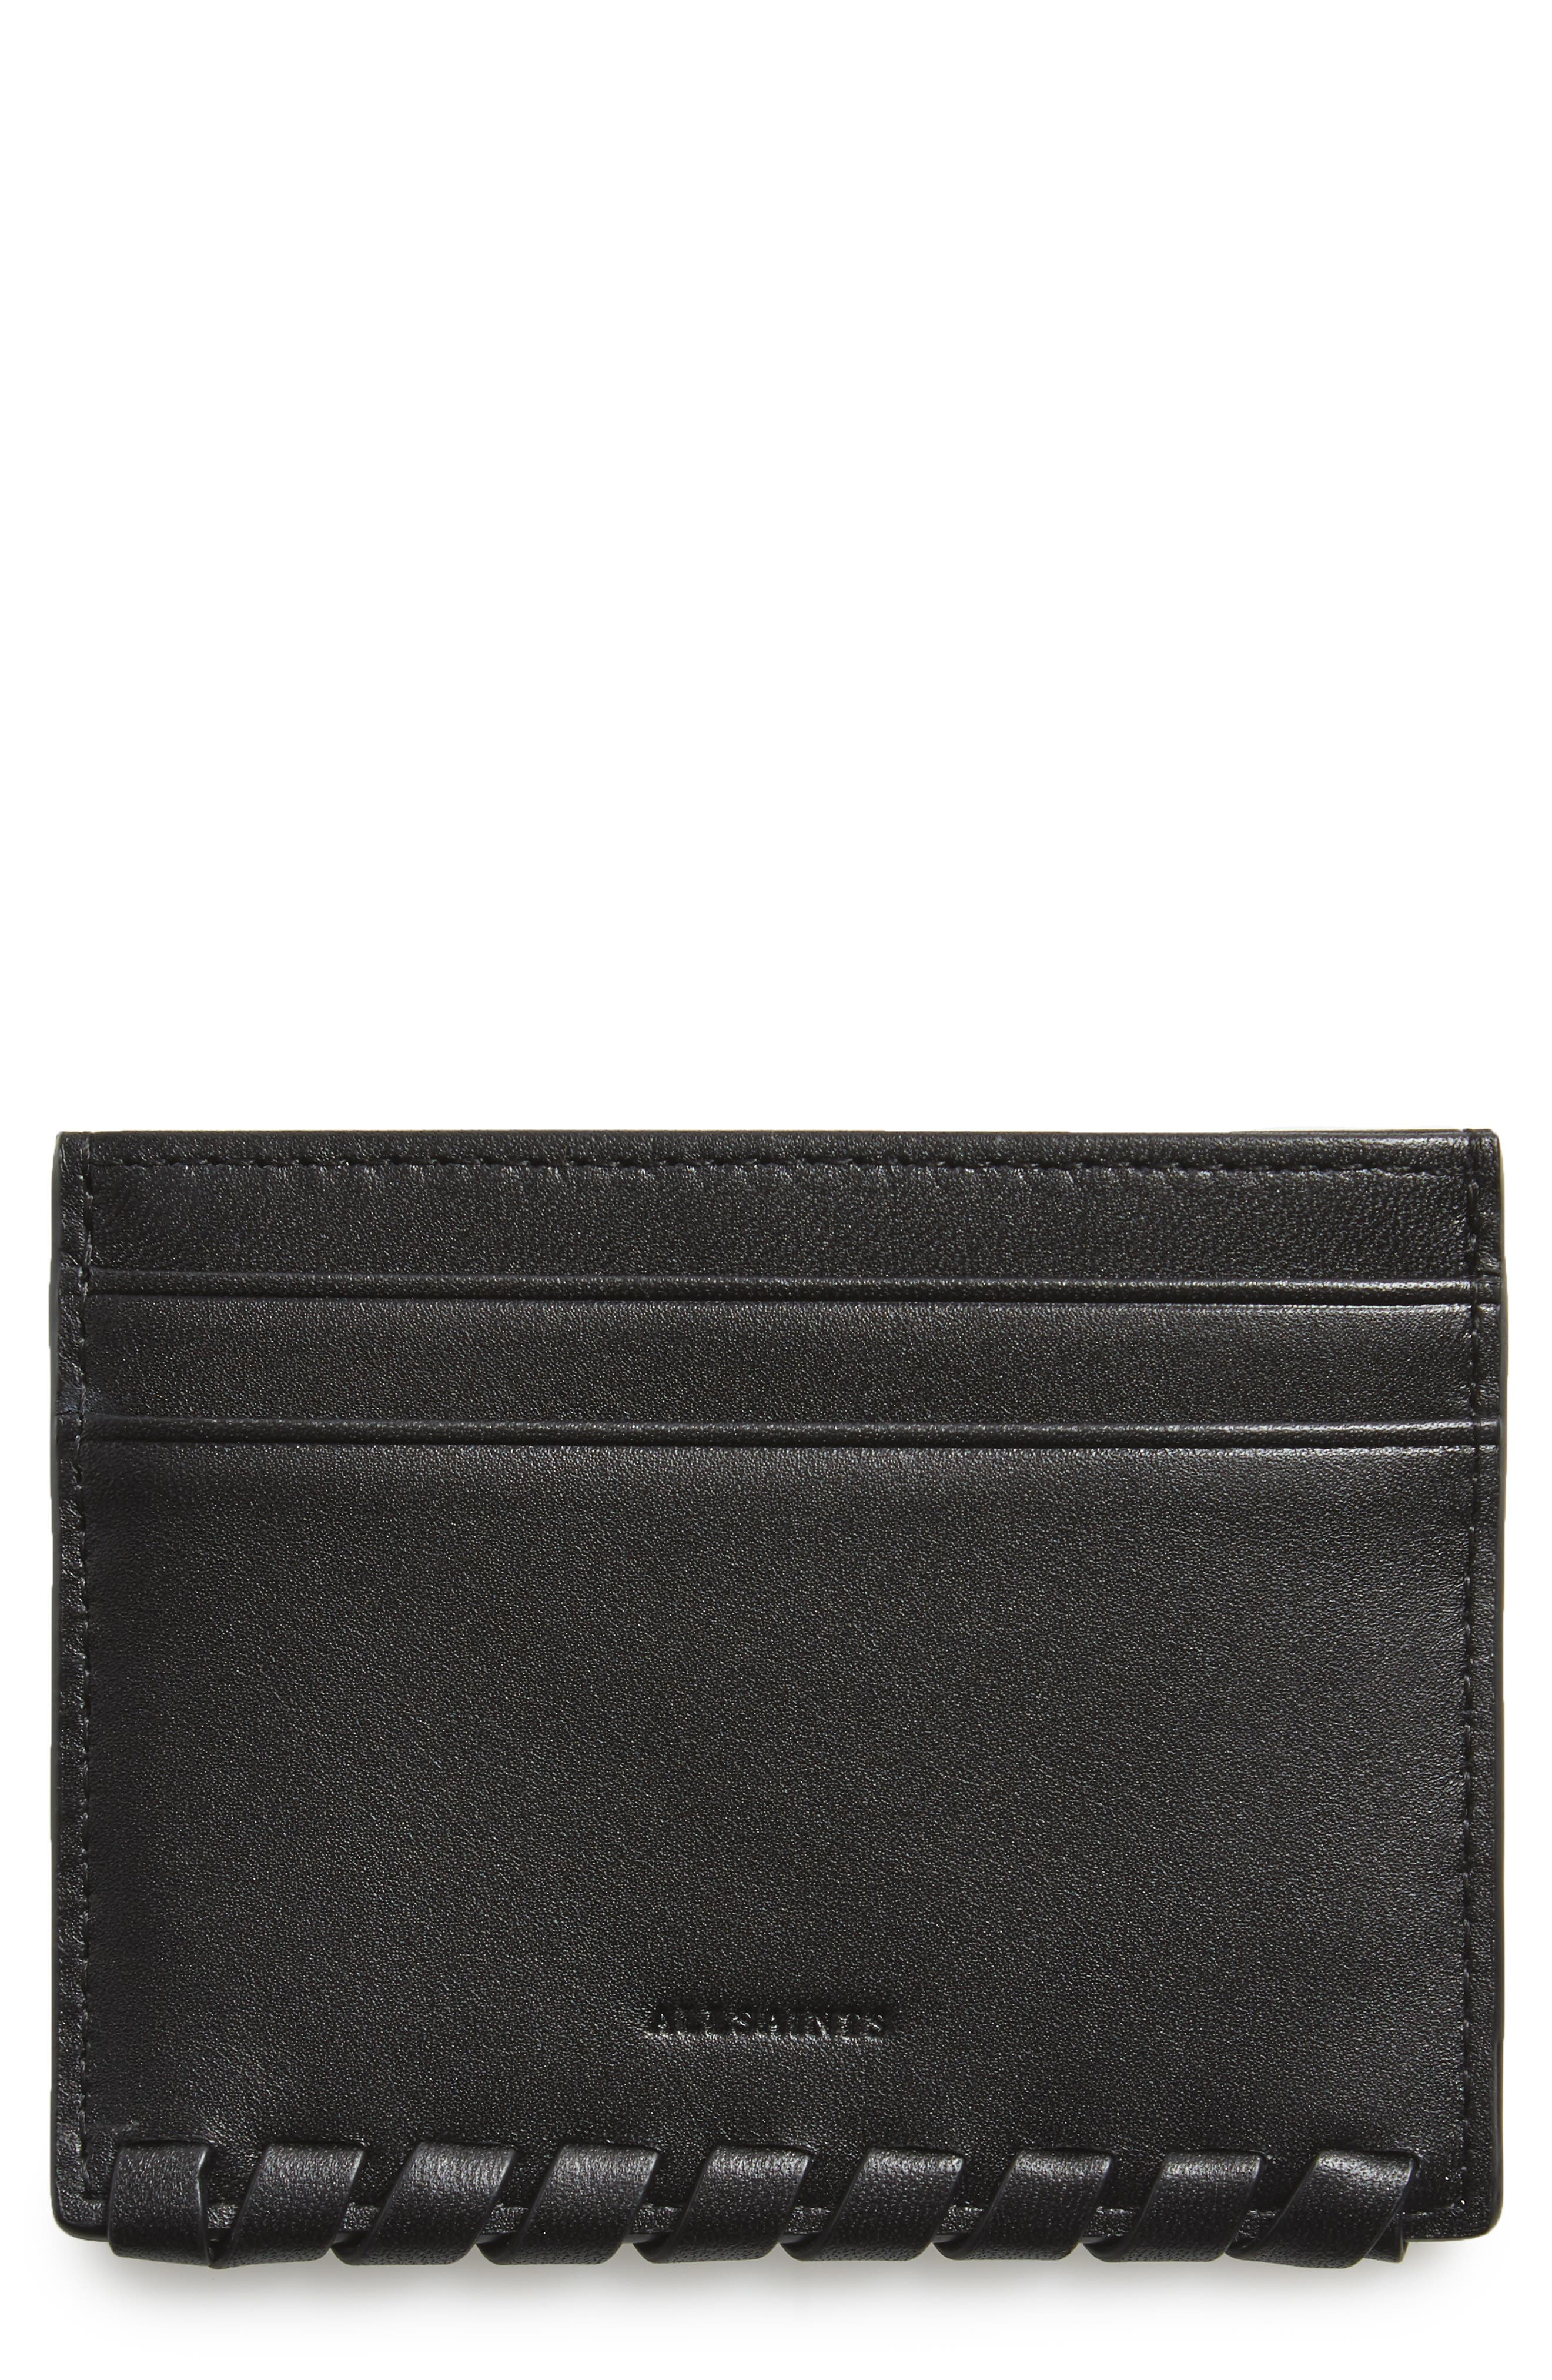 Kita Pebbled Leather Card Case,                         Main,                         color, Black